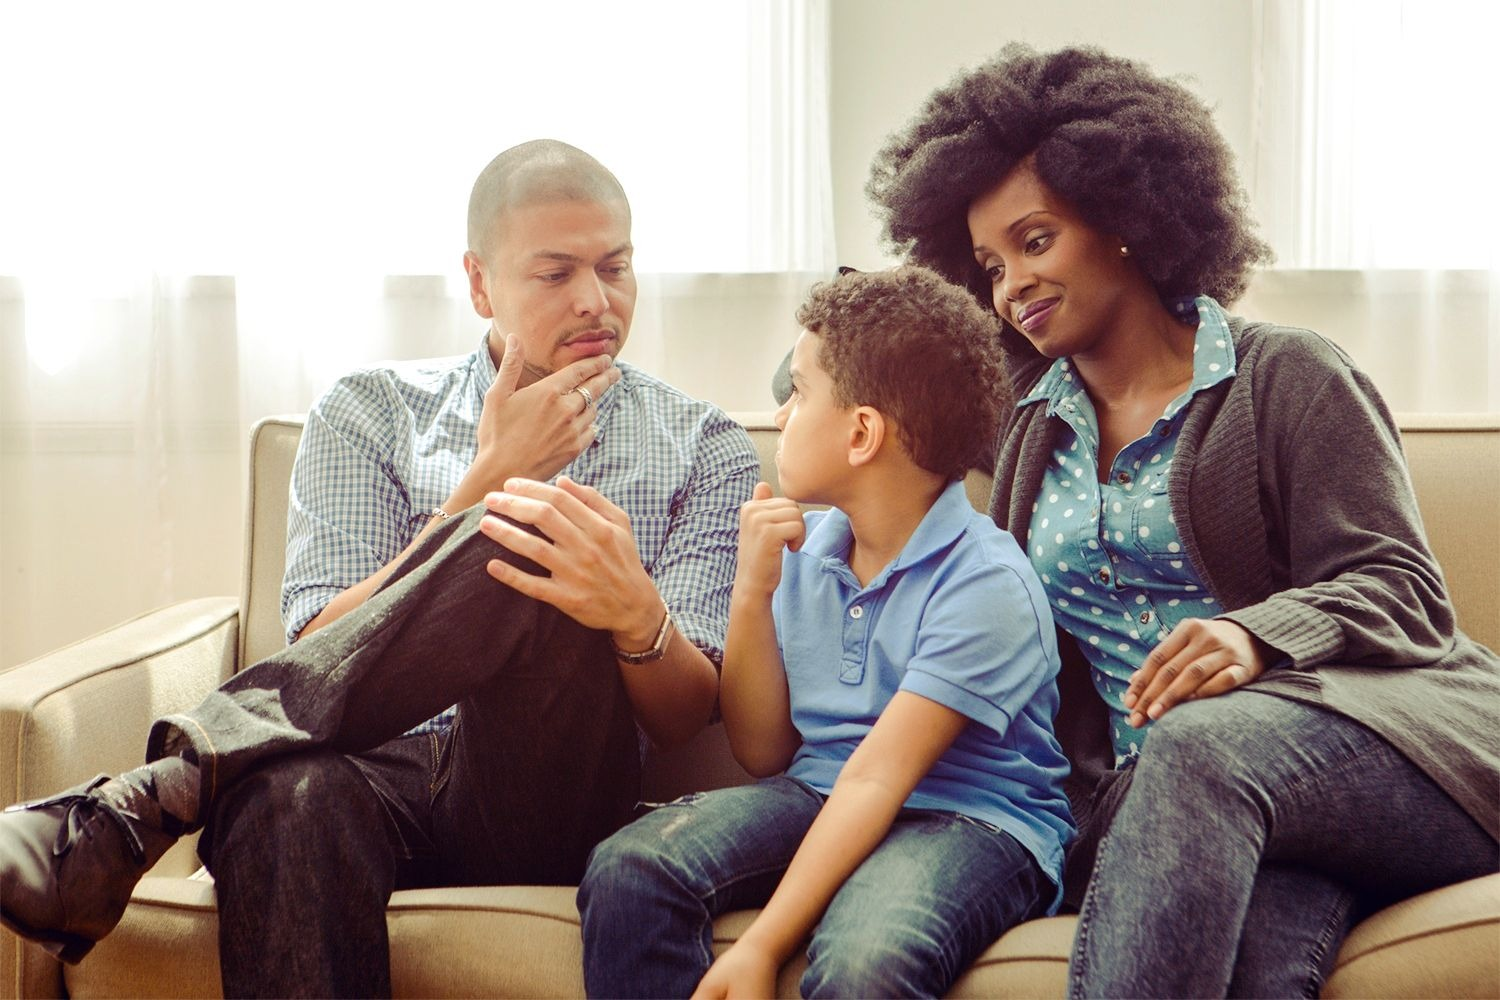 Discussing the Decision as a Family